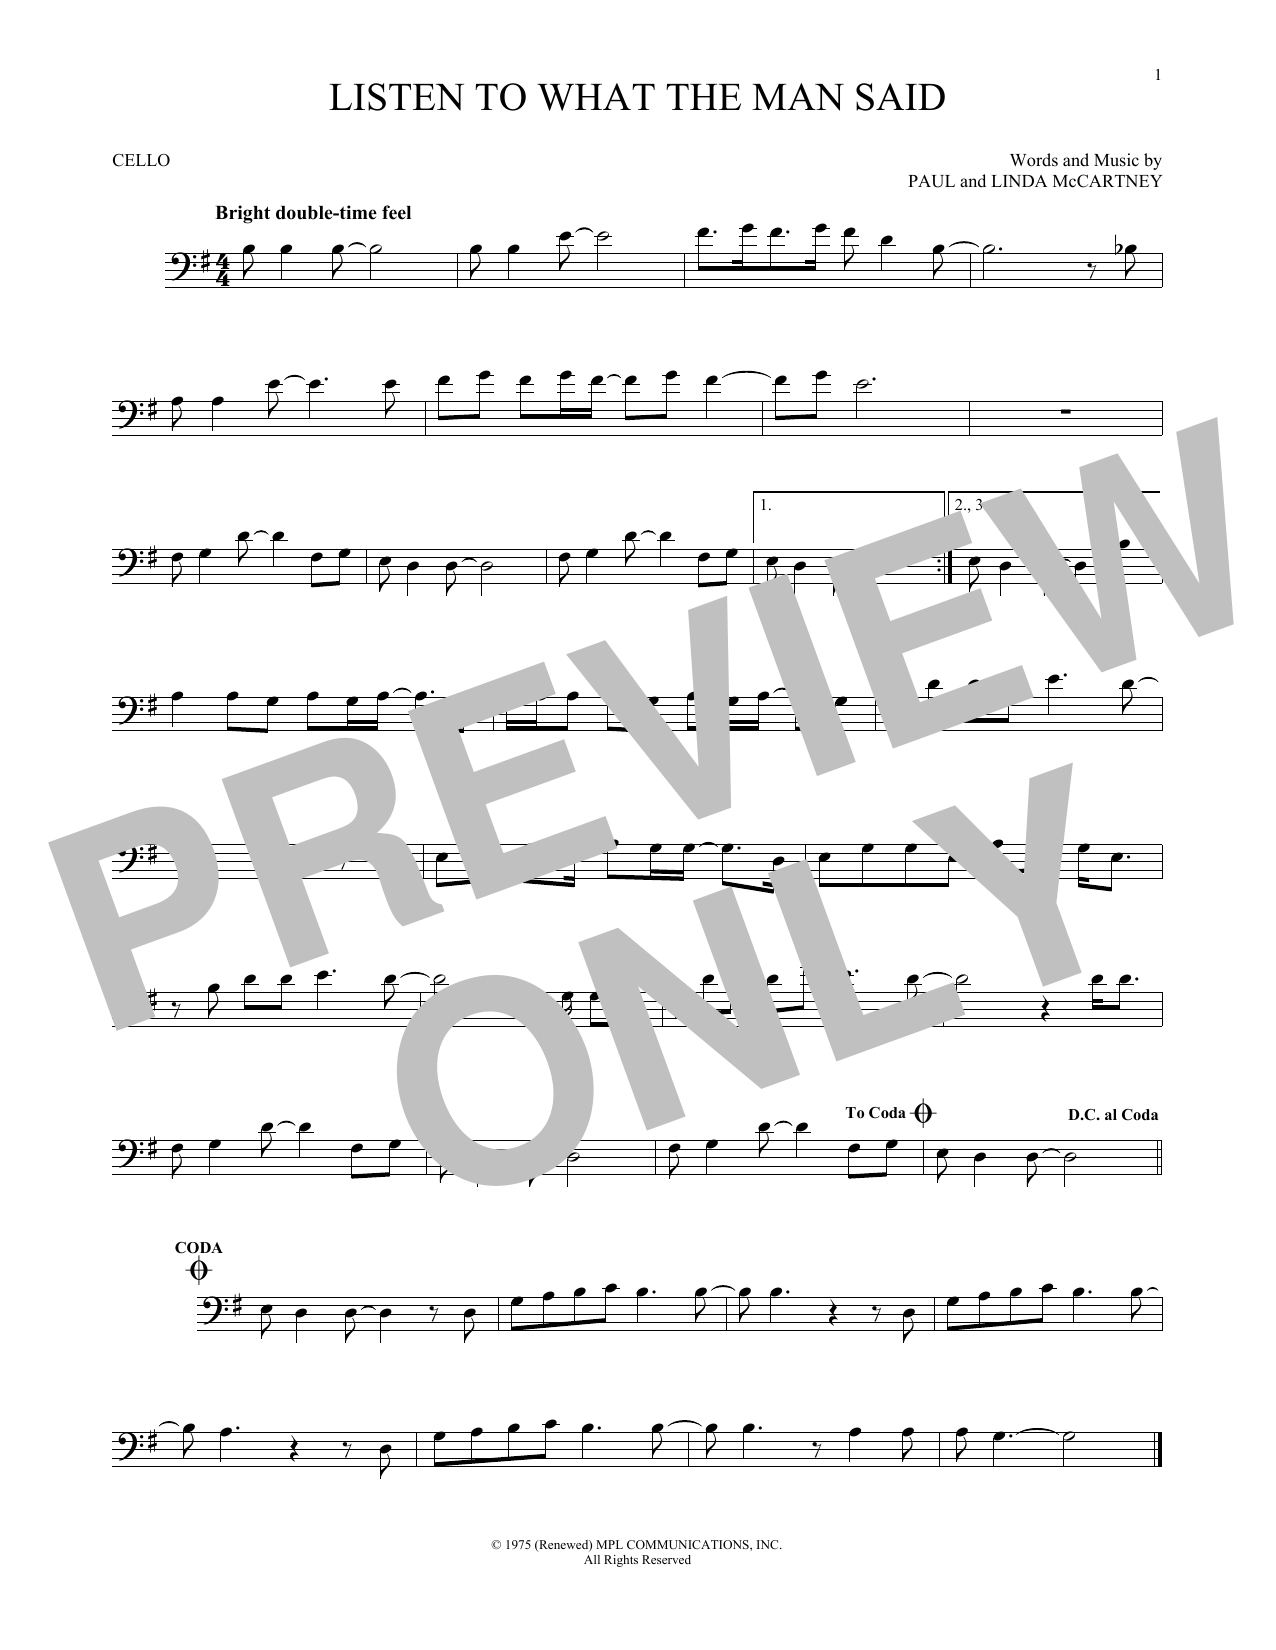 Wings Listen To What The Man Said sheet music notes and chords. Download Printable PDF.